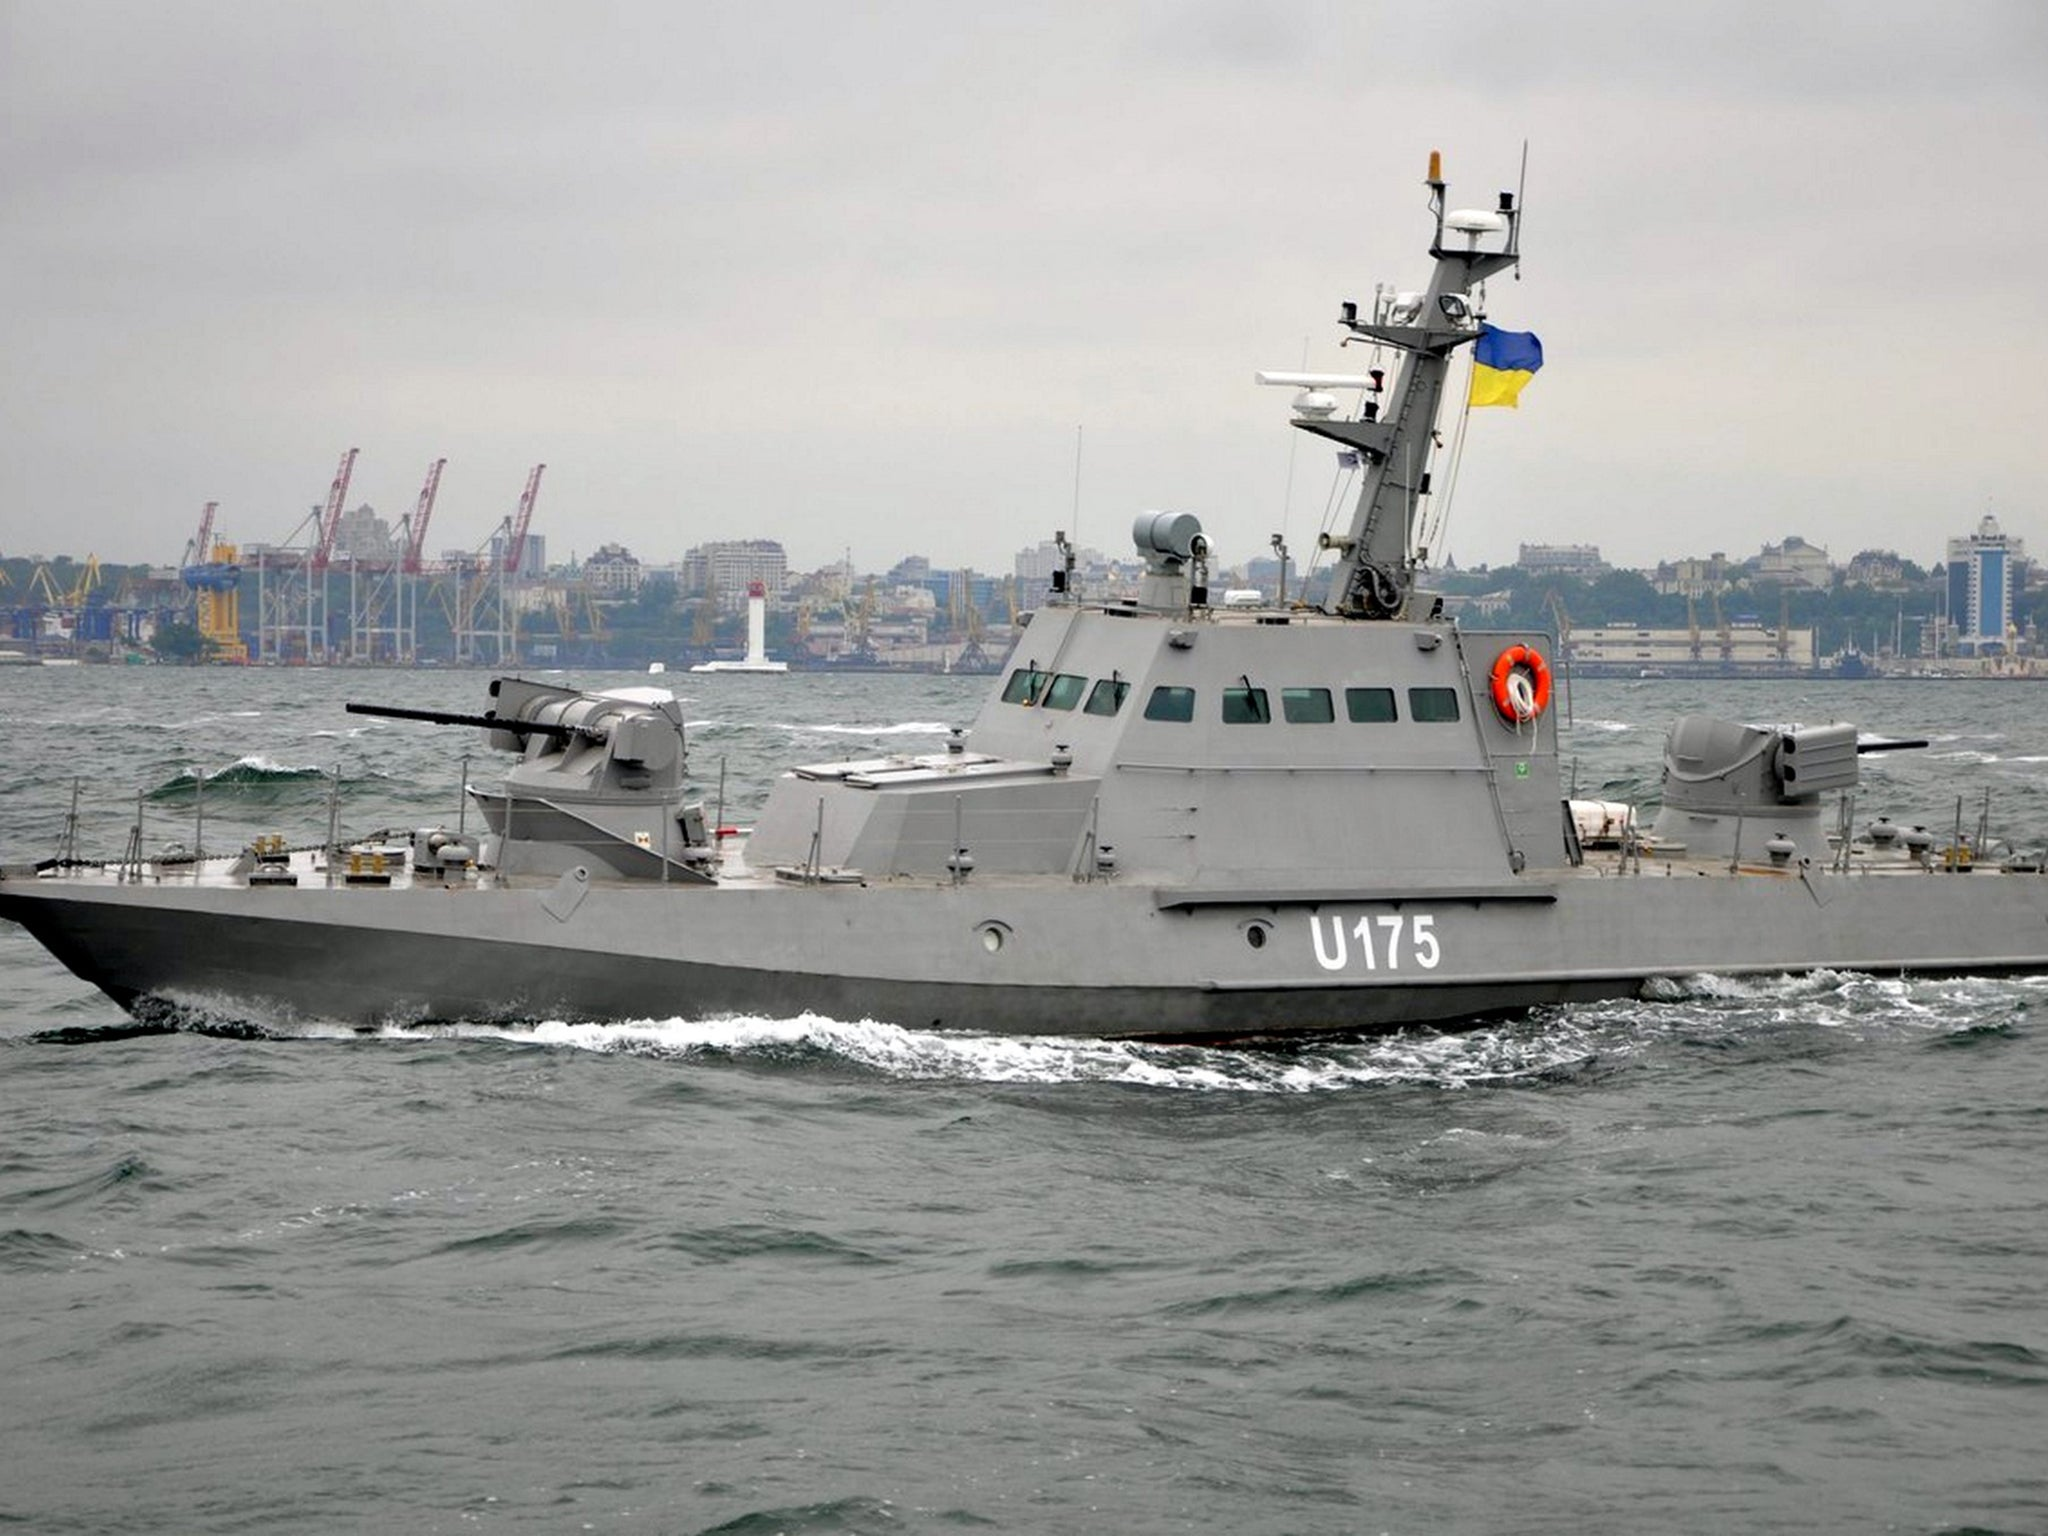 Crimea: Three Ukraine navy boats captured by Russian forces